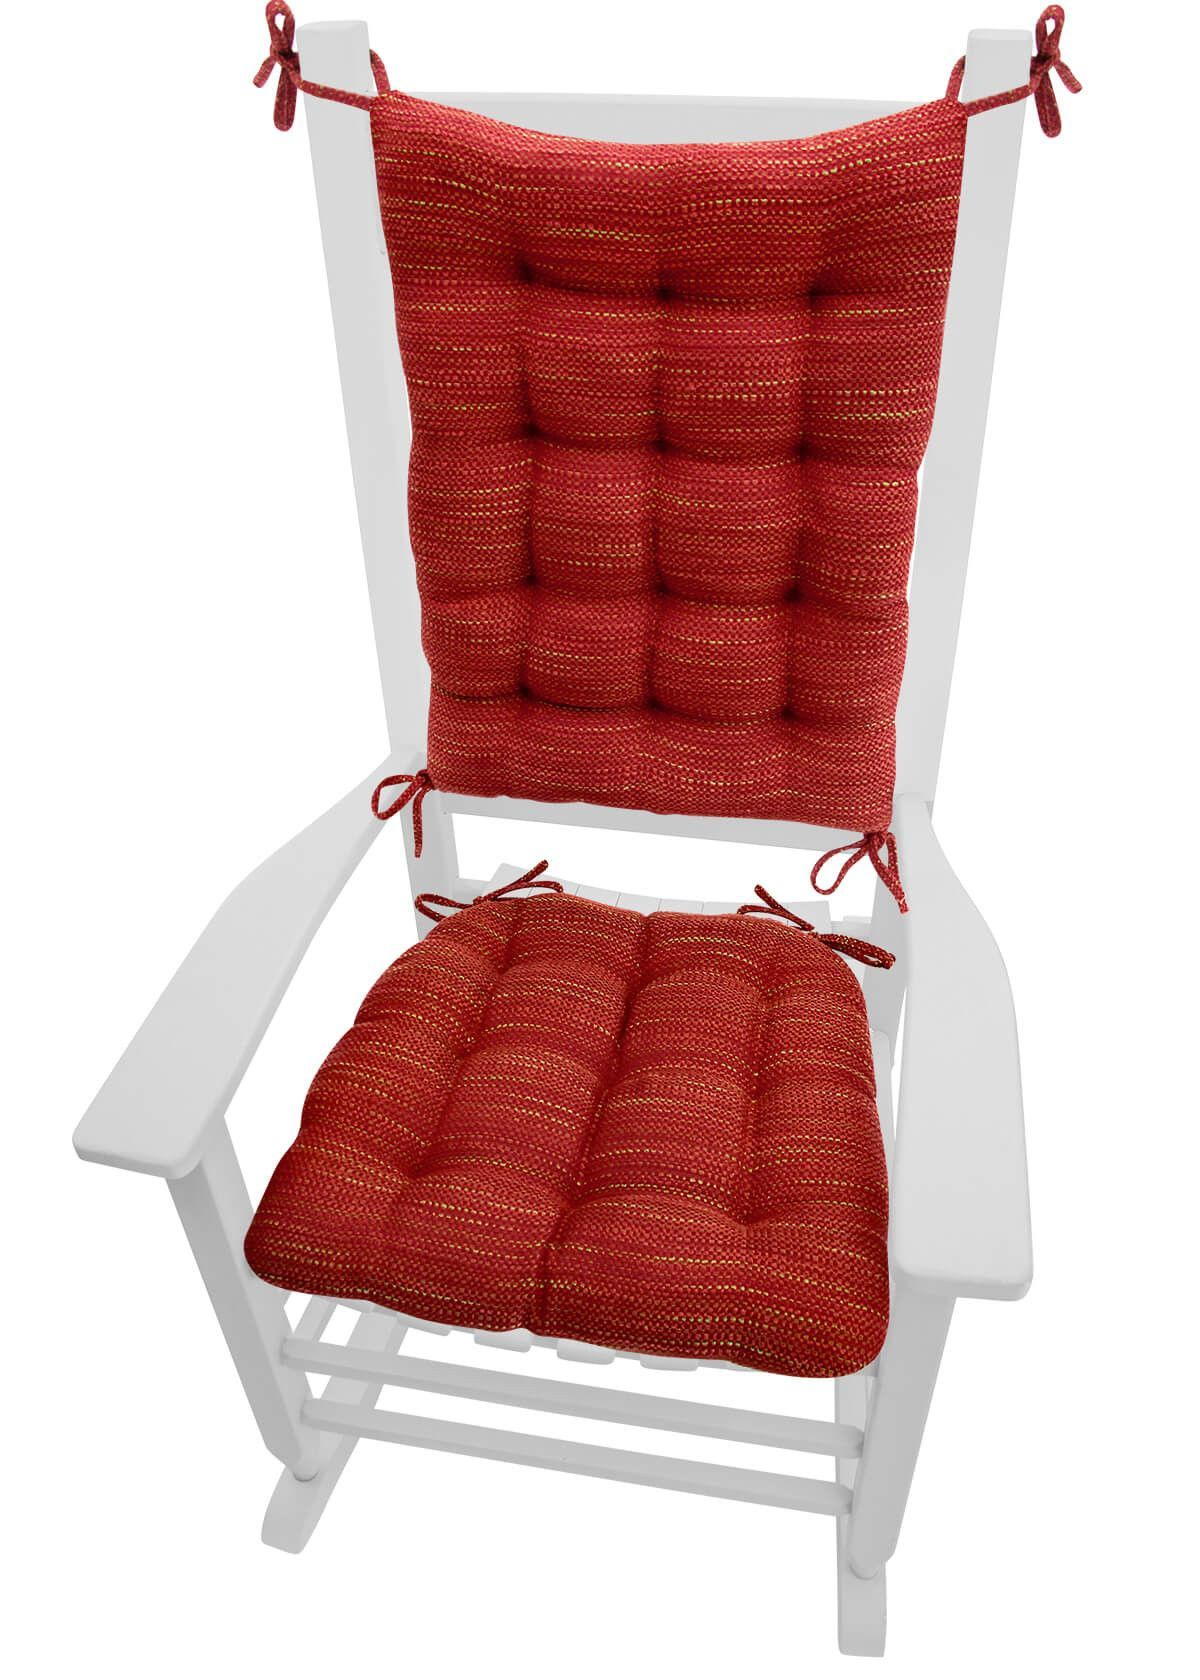 Brisbane Red reversible, latex fill rocking chair cushions are made of a basketweave upholstery fabric in juicy Macintosh red with threads of golden delicious and granny smith green. #valentine #love